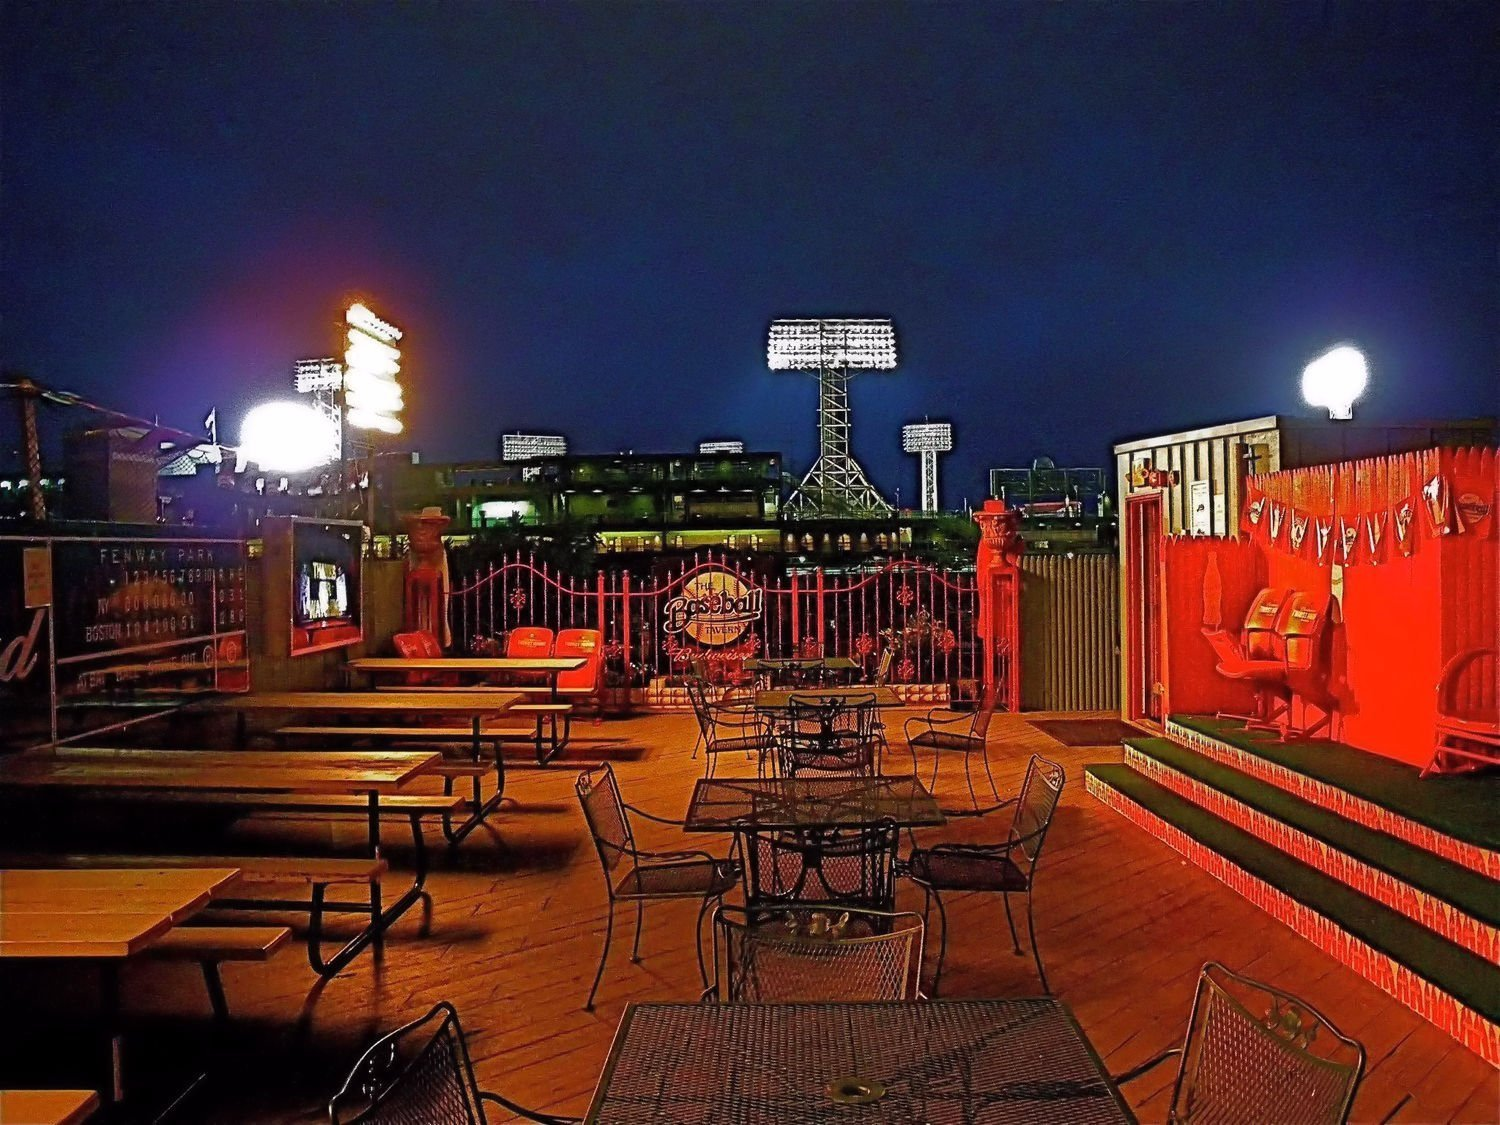 Nighttime photo of the outside patio at the Baseball Tavern, a great eatery and watering hole just minutes from historic Fenway Park.